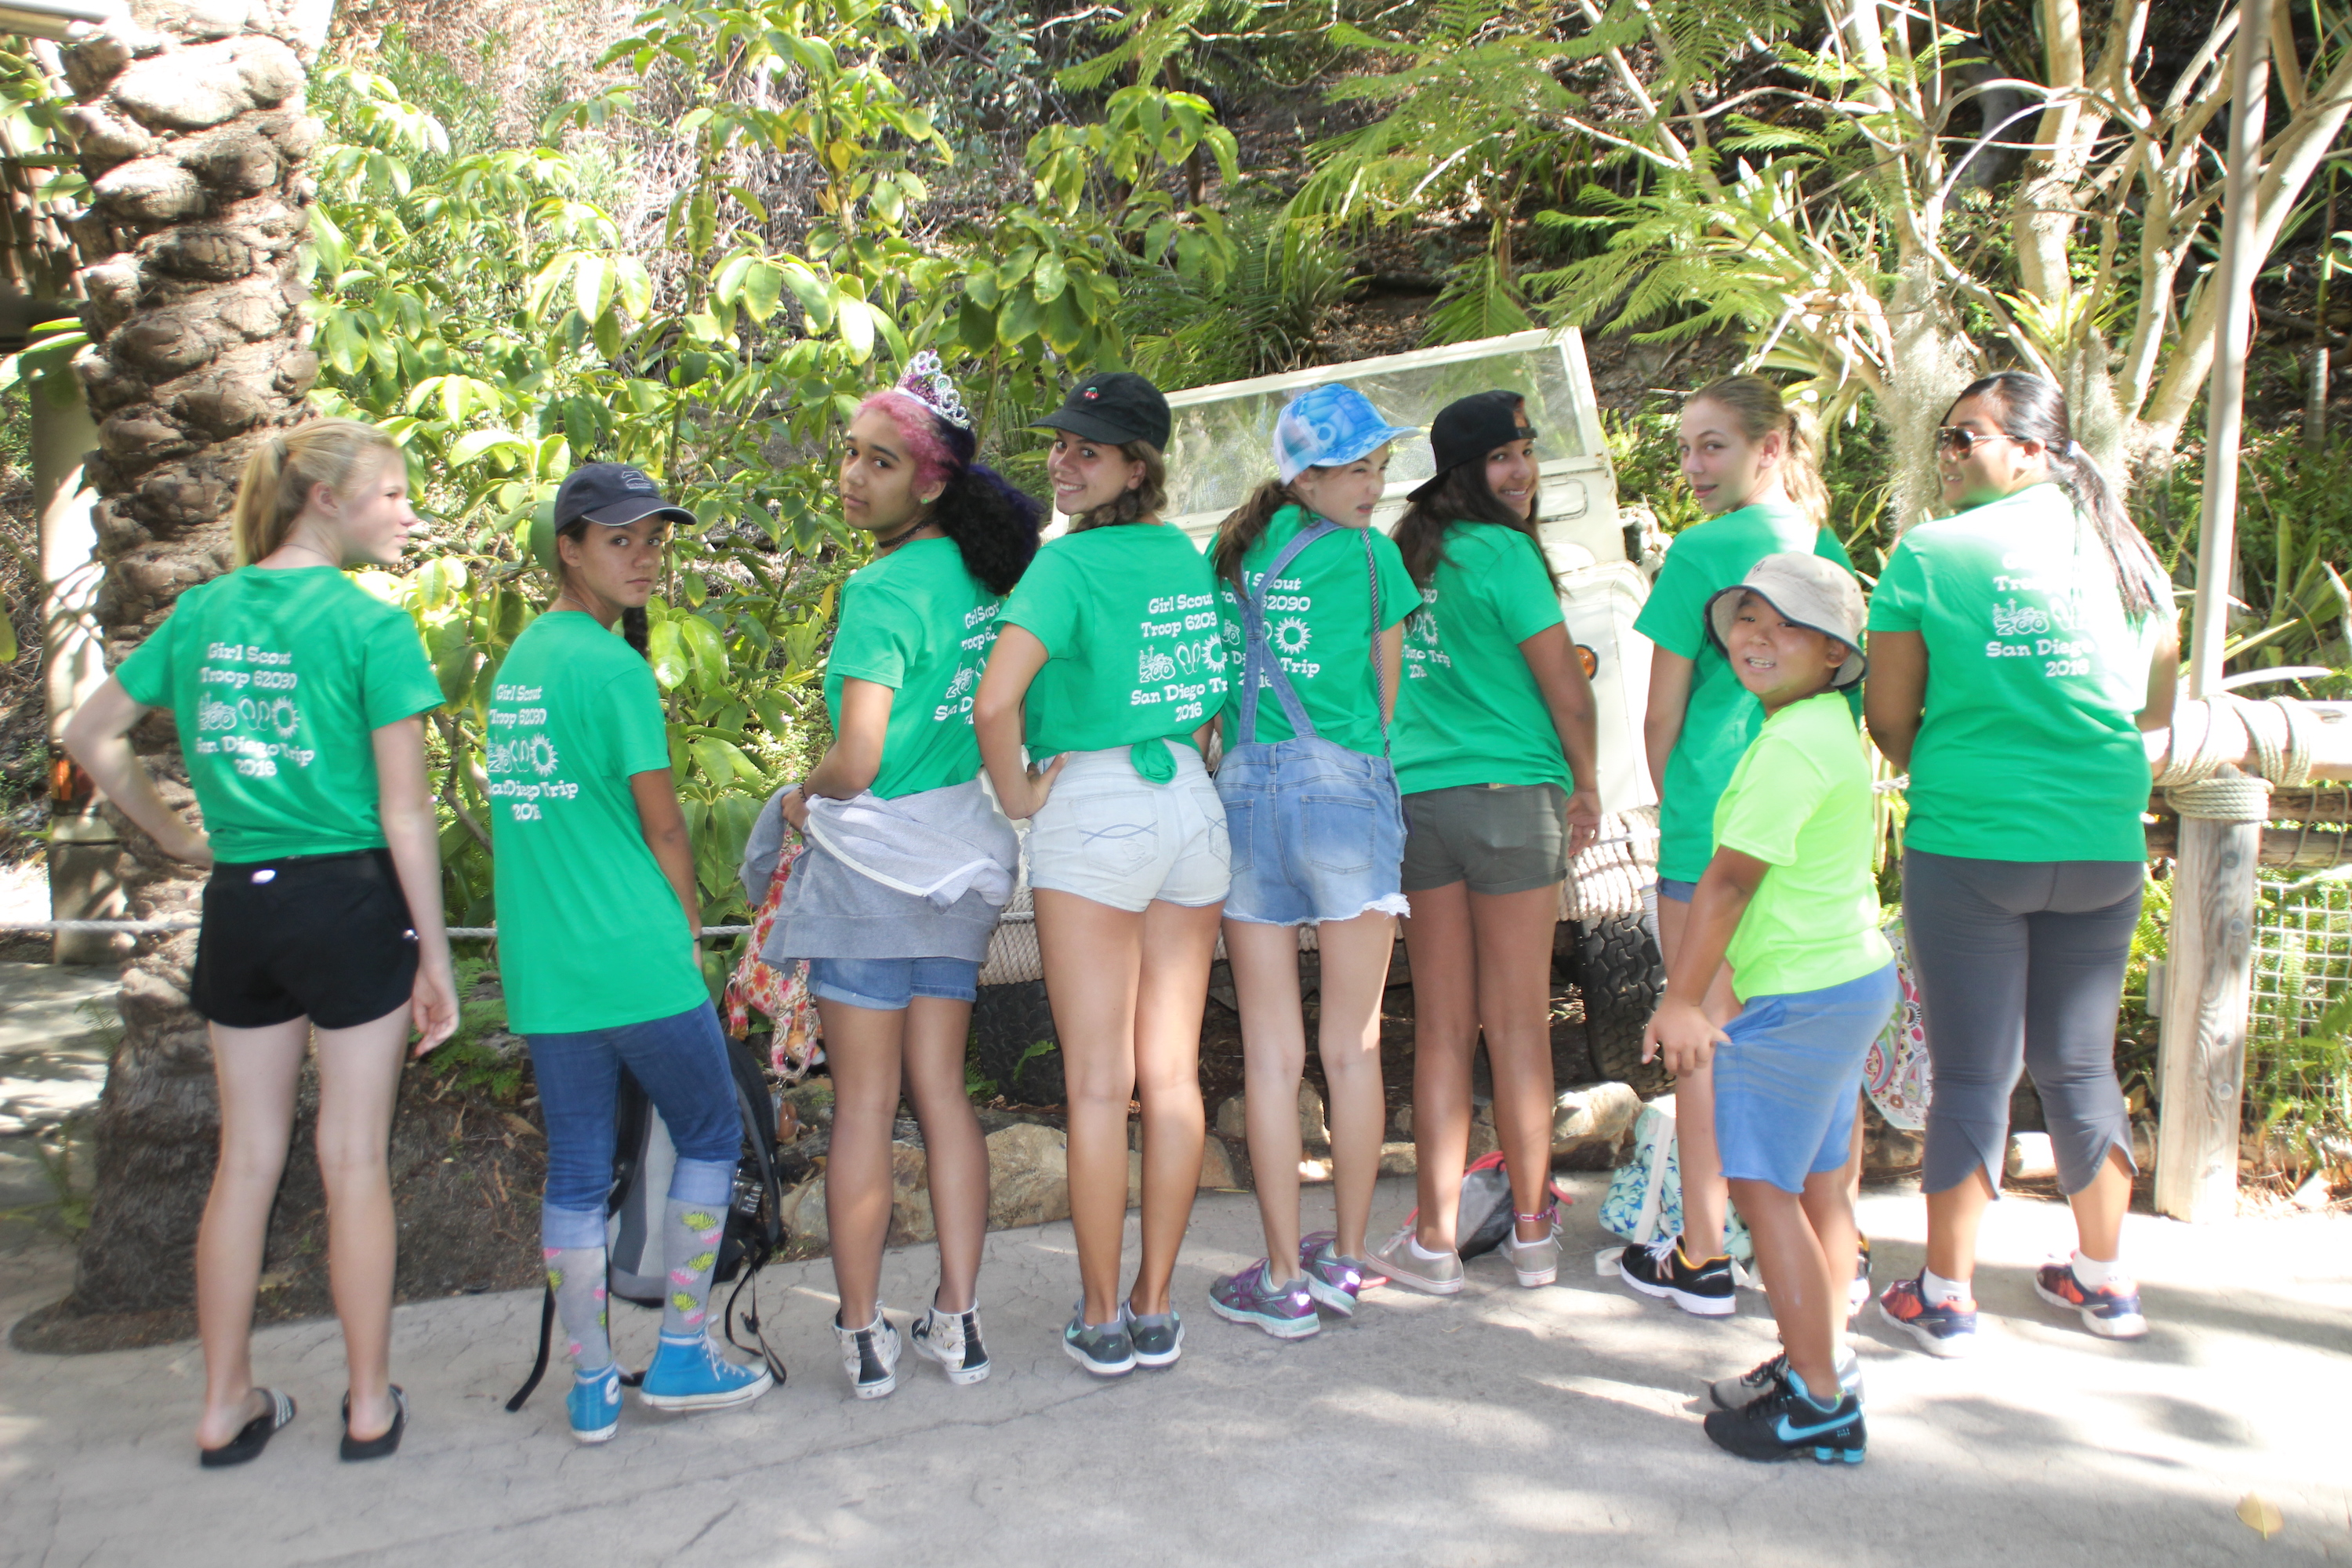 Custom t shirts for girl scout troop 62090 san diego trip for Girl scout troop shirts